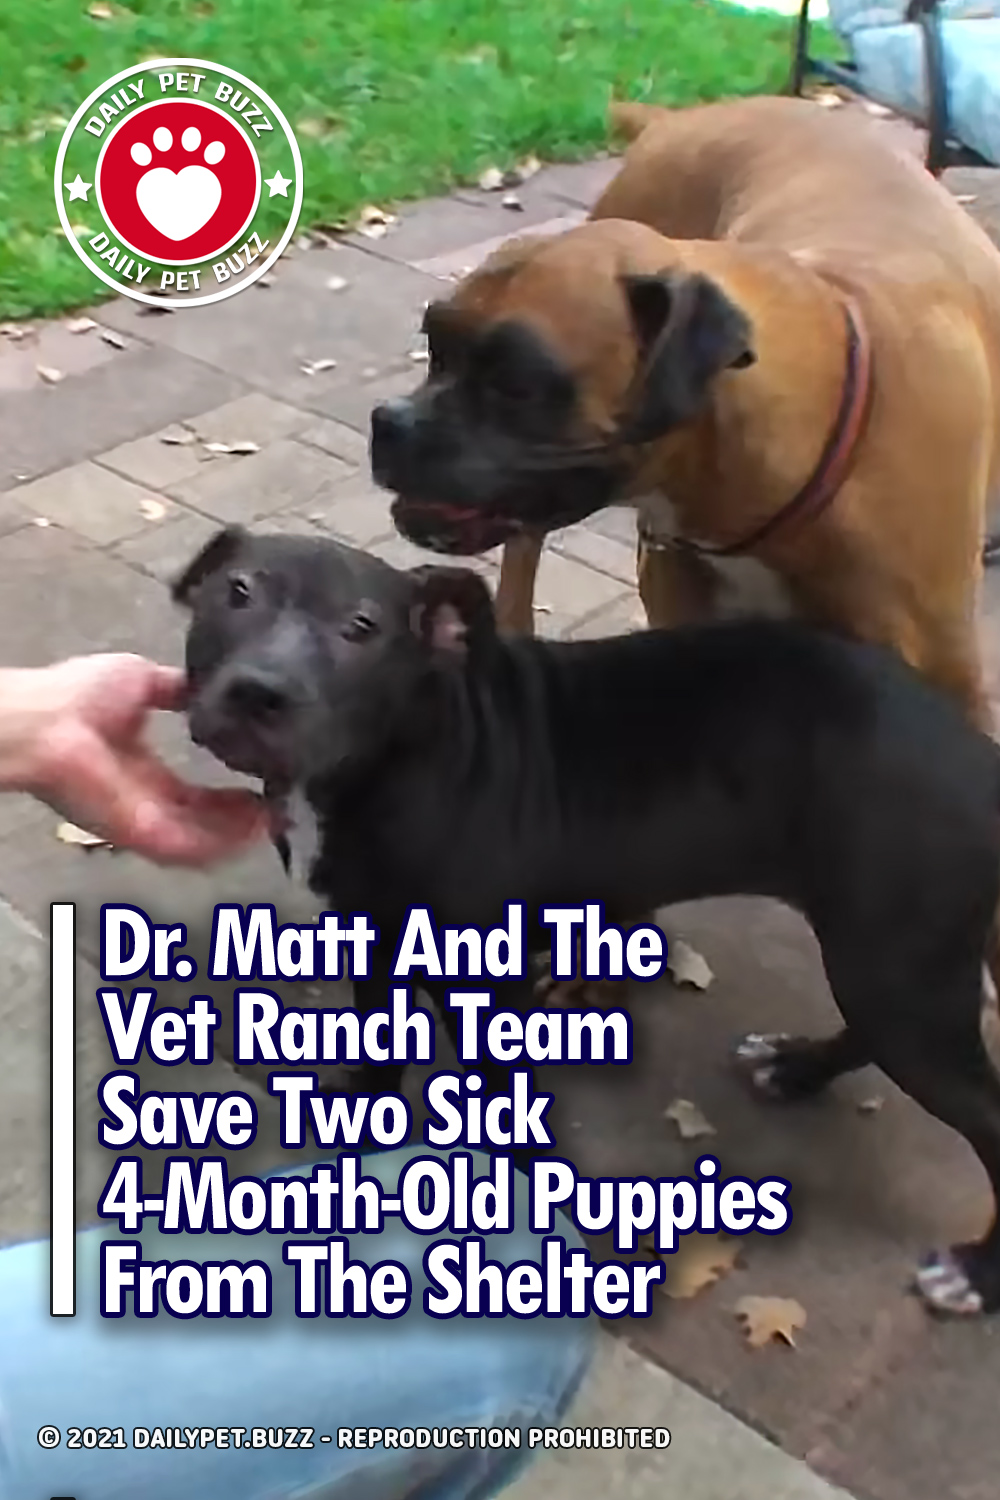 Dr. Matt And The Vet Ranch Team Save Two Sick 4-Month-Old Puppies From The Shelter